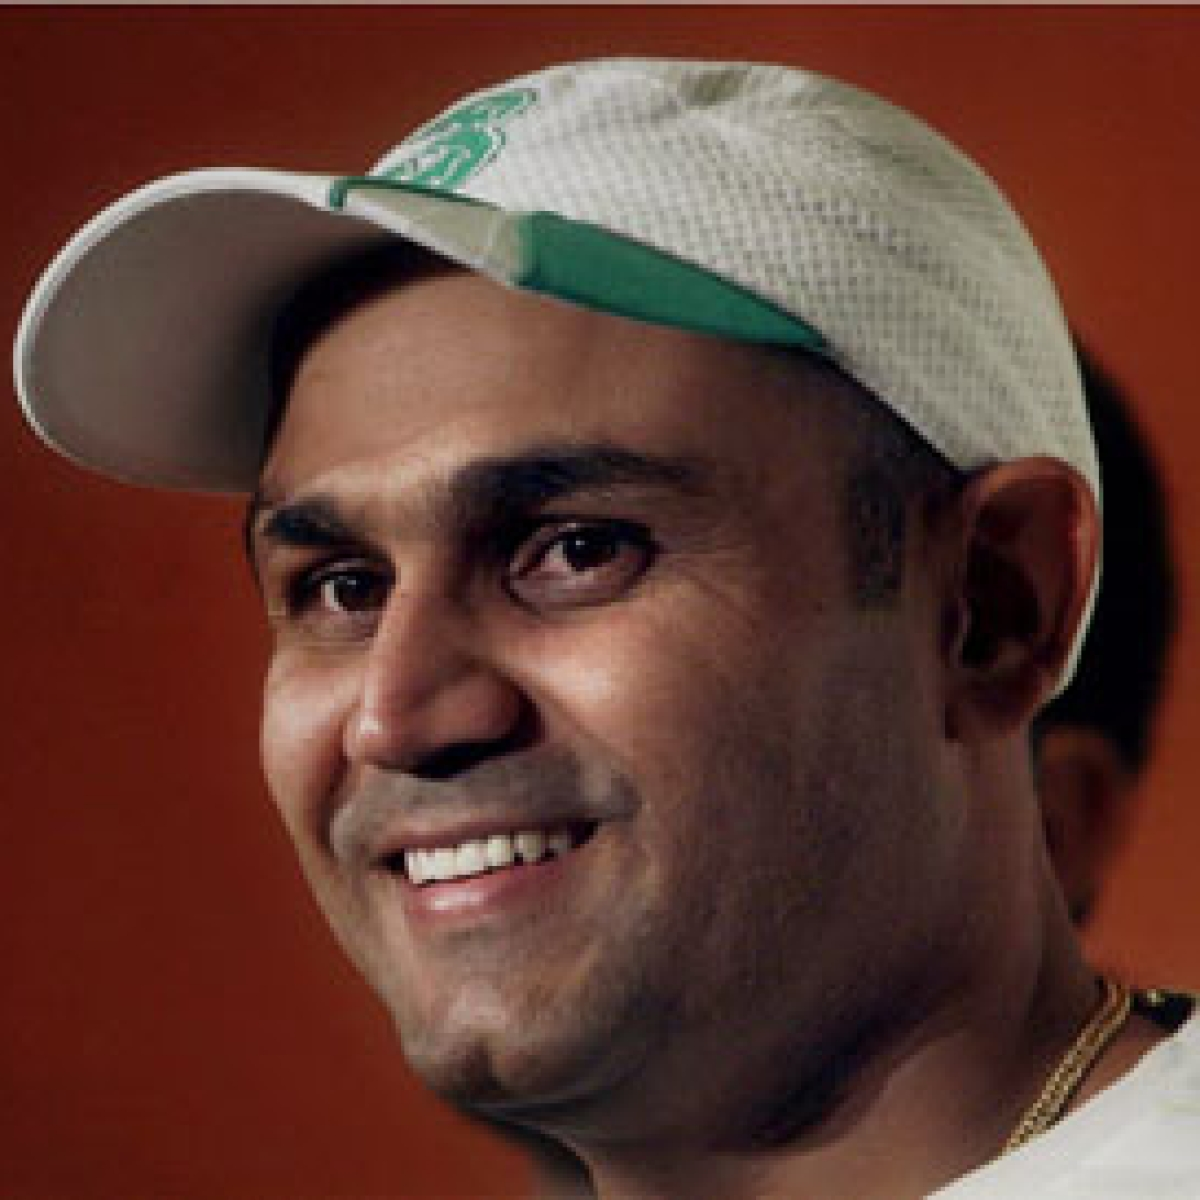 IPL 2020 promises to bring joy to us all, says Virender Sehwag